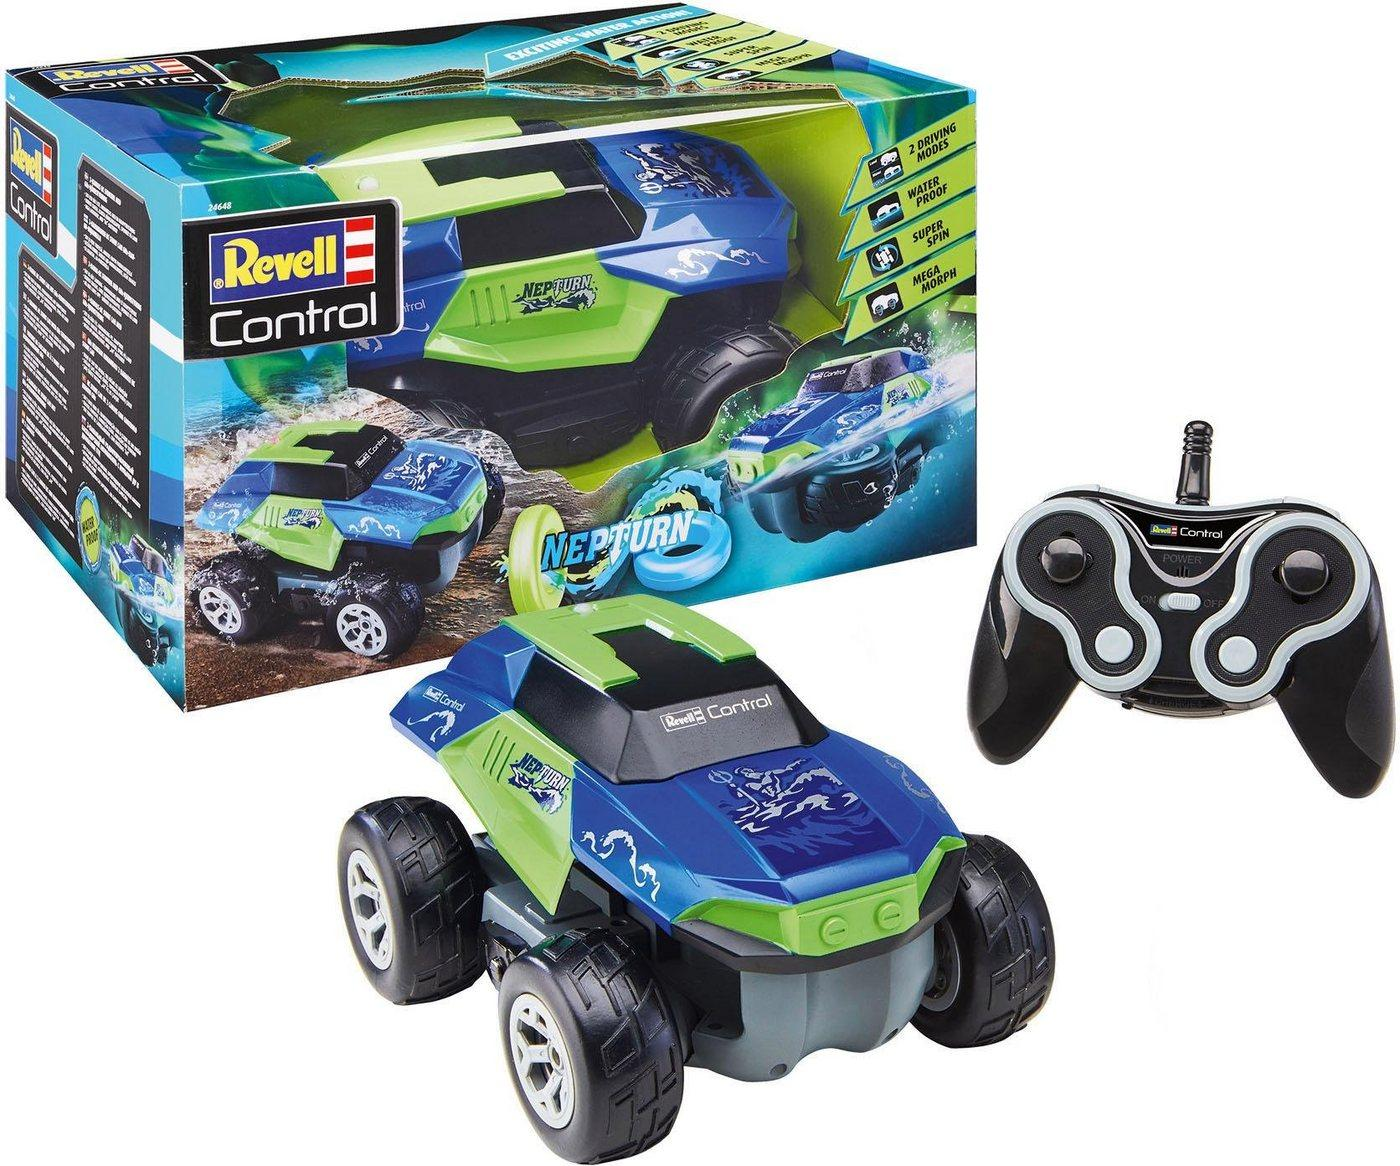 Revell® RC-Auto »Revell® control, Nepturn«